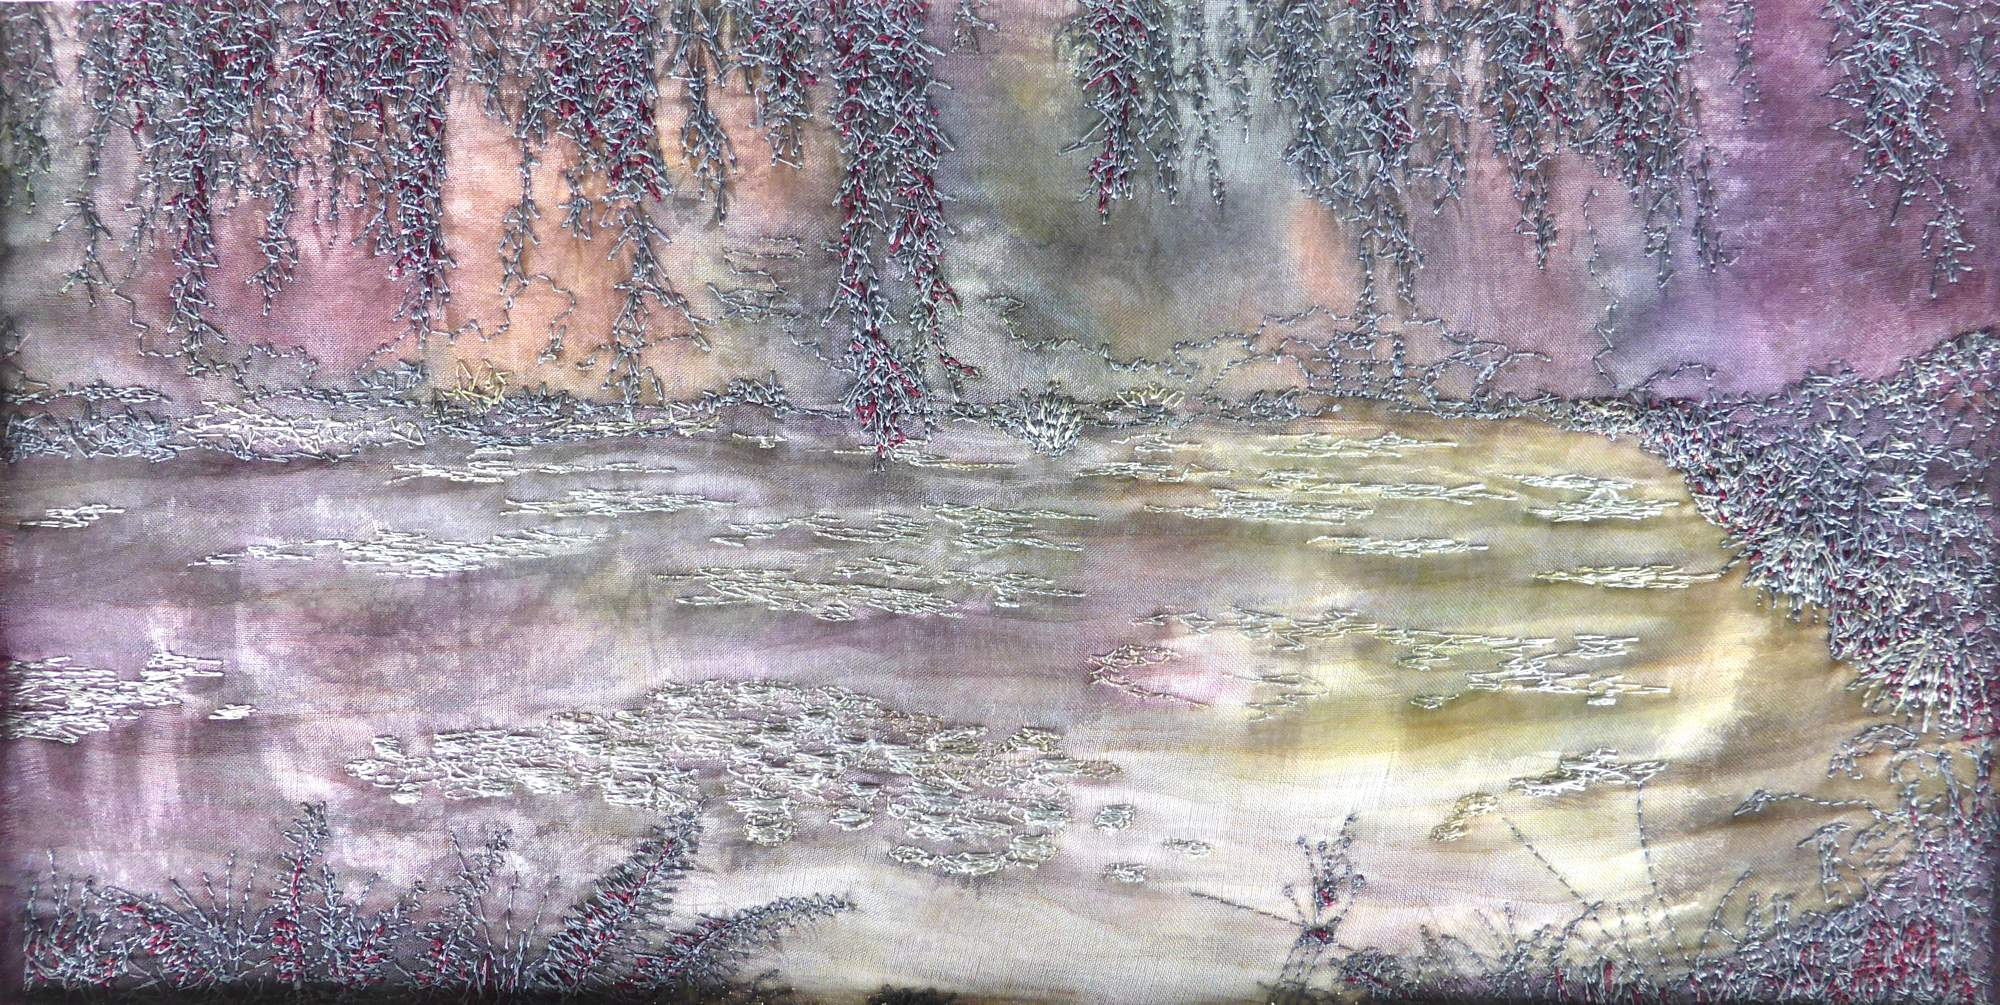 Impression - Lily Pond (2014) textile art by Andrea McCallum